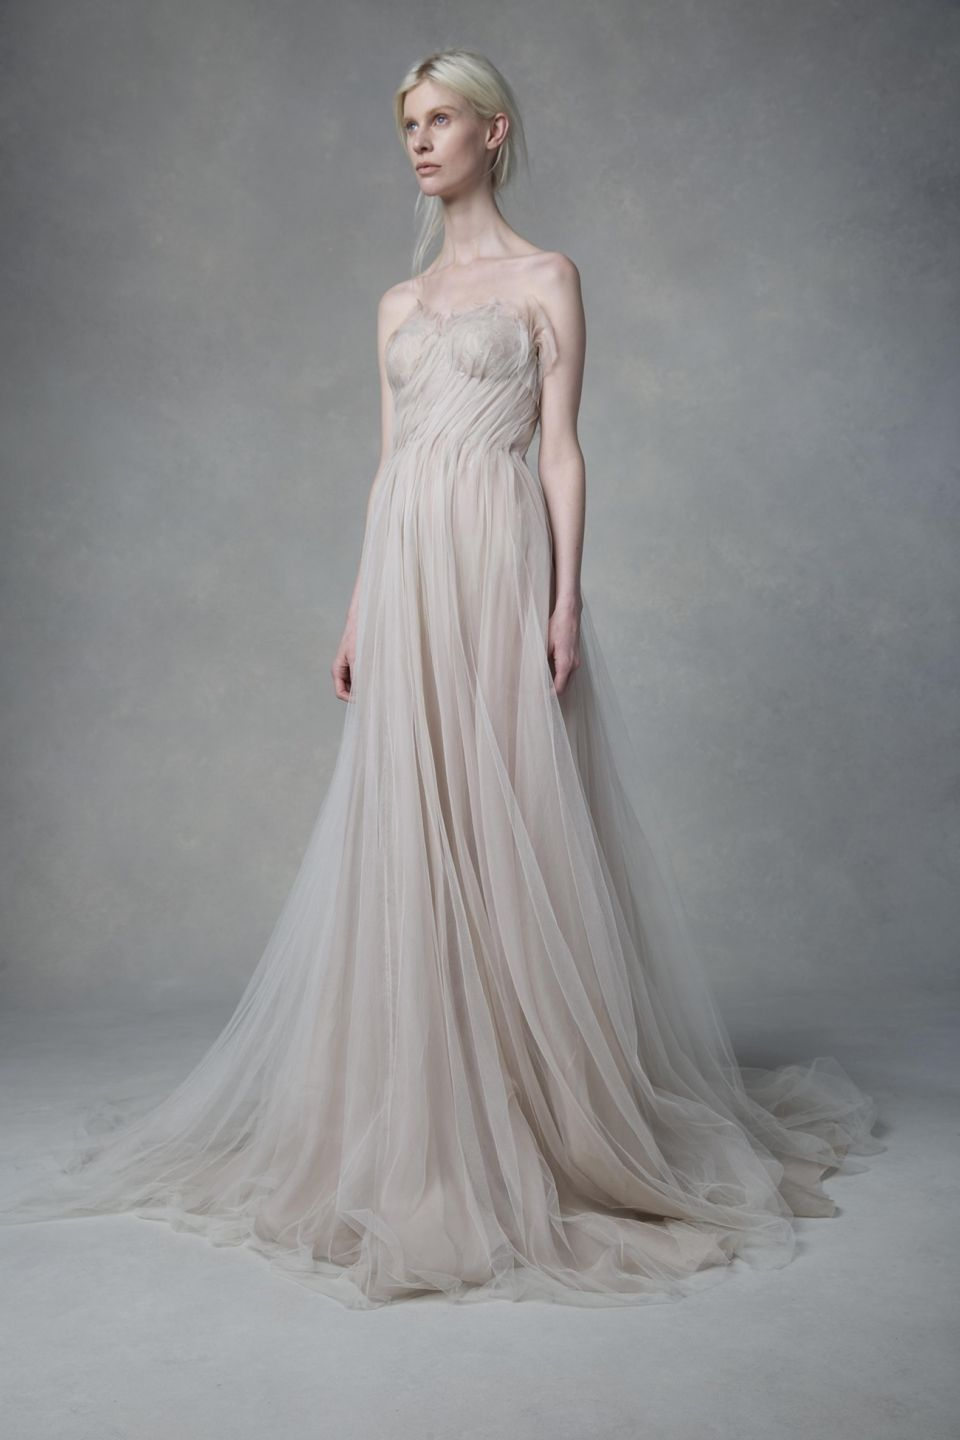 Bridal trend undulating ruffles samuelle couture ball gowns